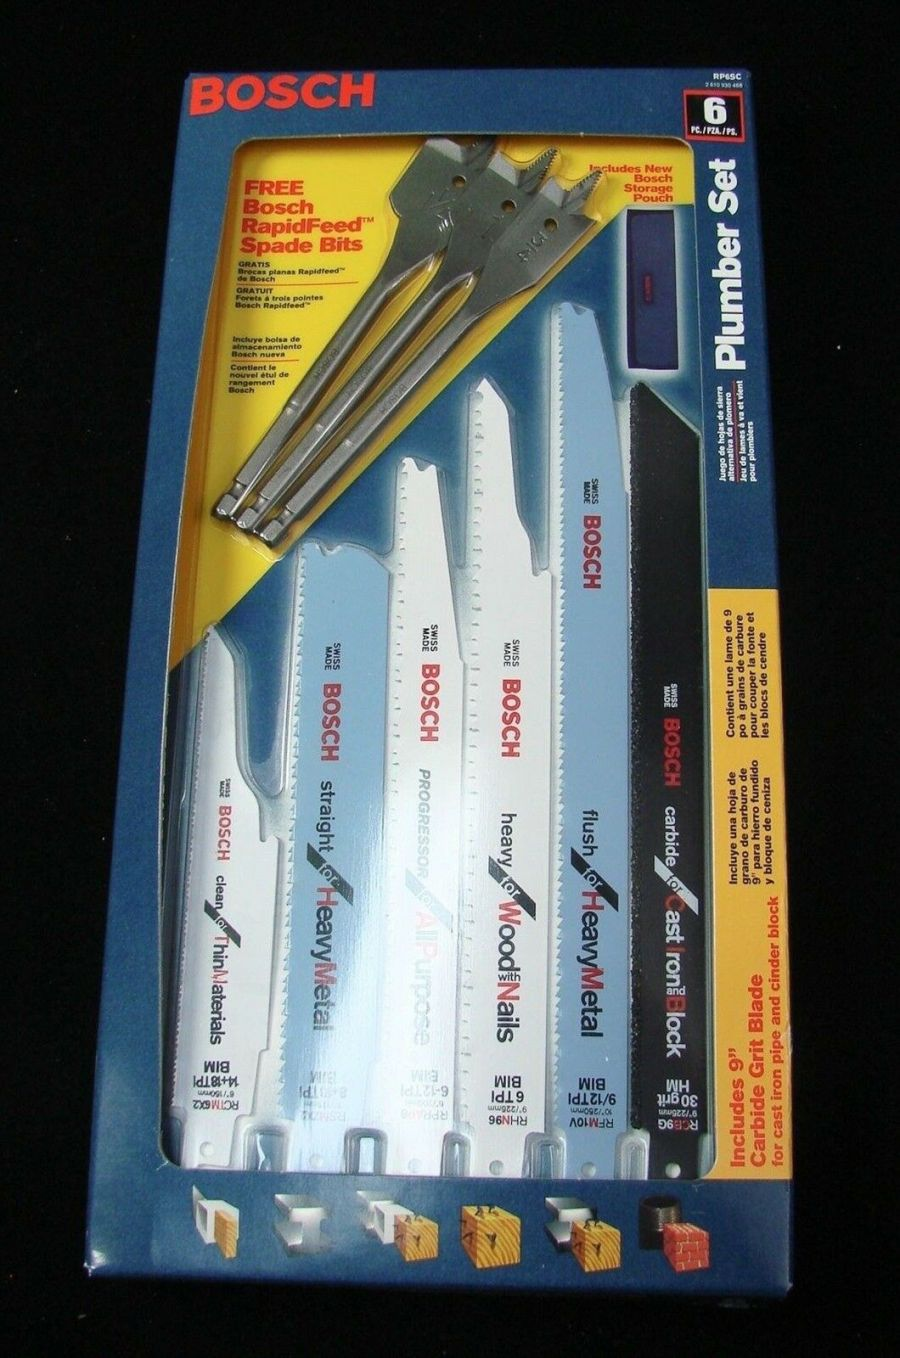 BOSCH RP6SC 6 Piece Reciprocating Saw Blade Plumbers 3